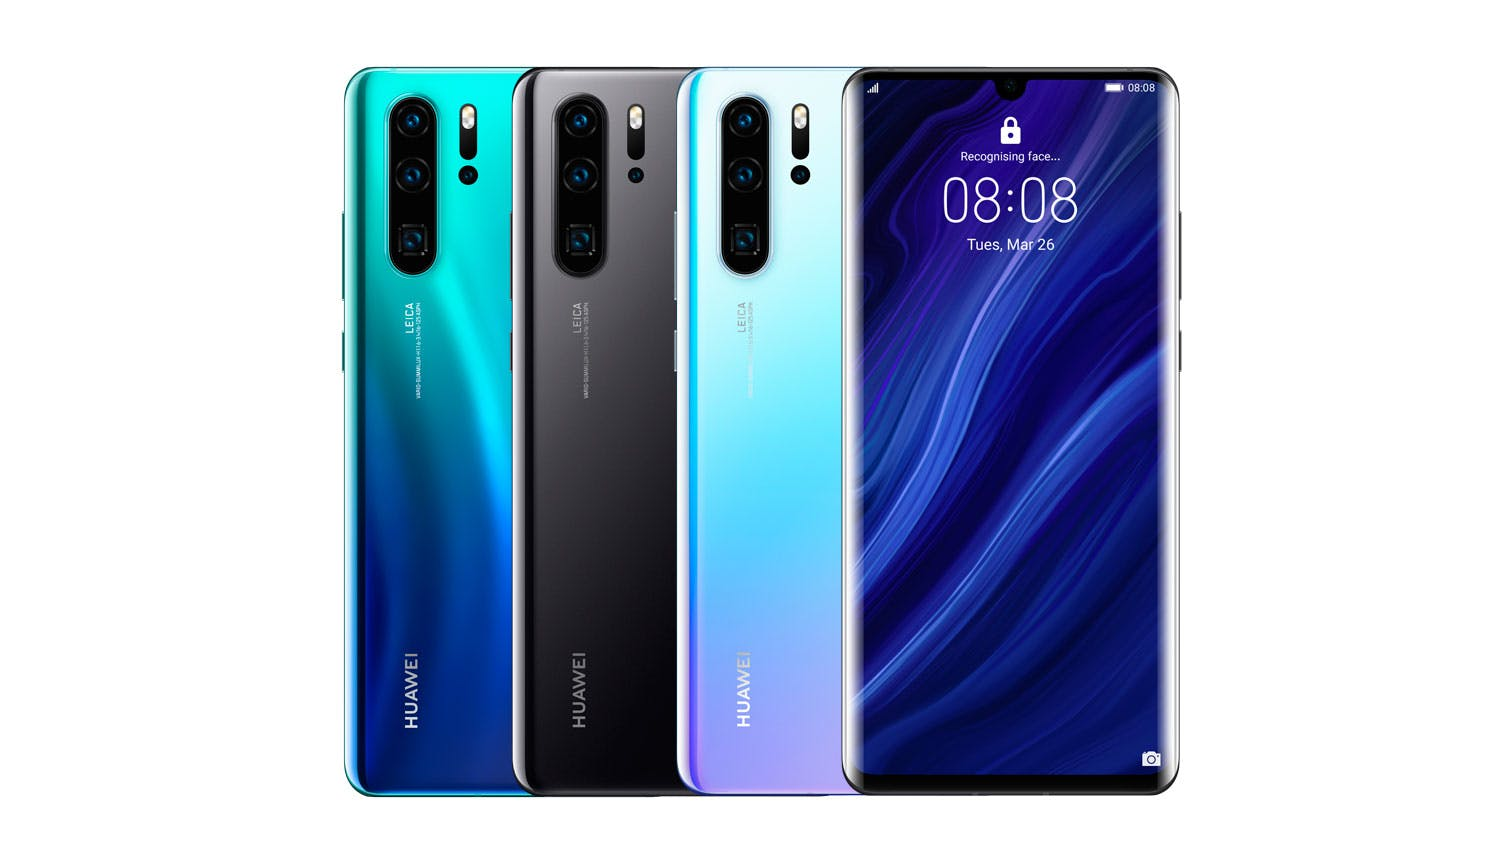 Huawei launches P30 Pro in India